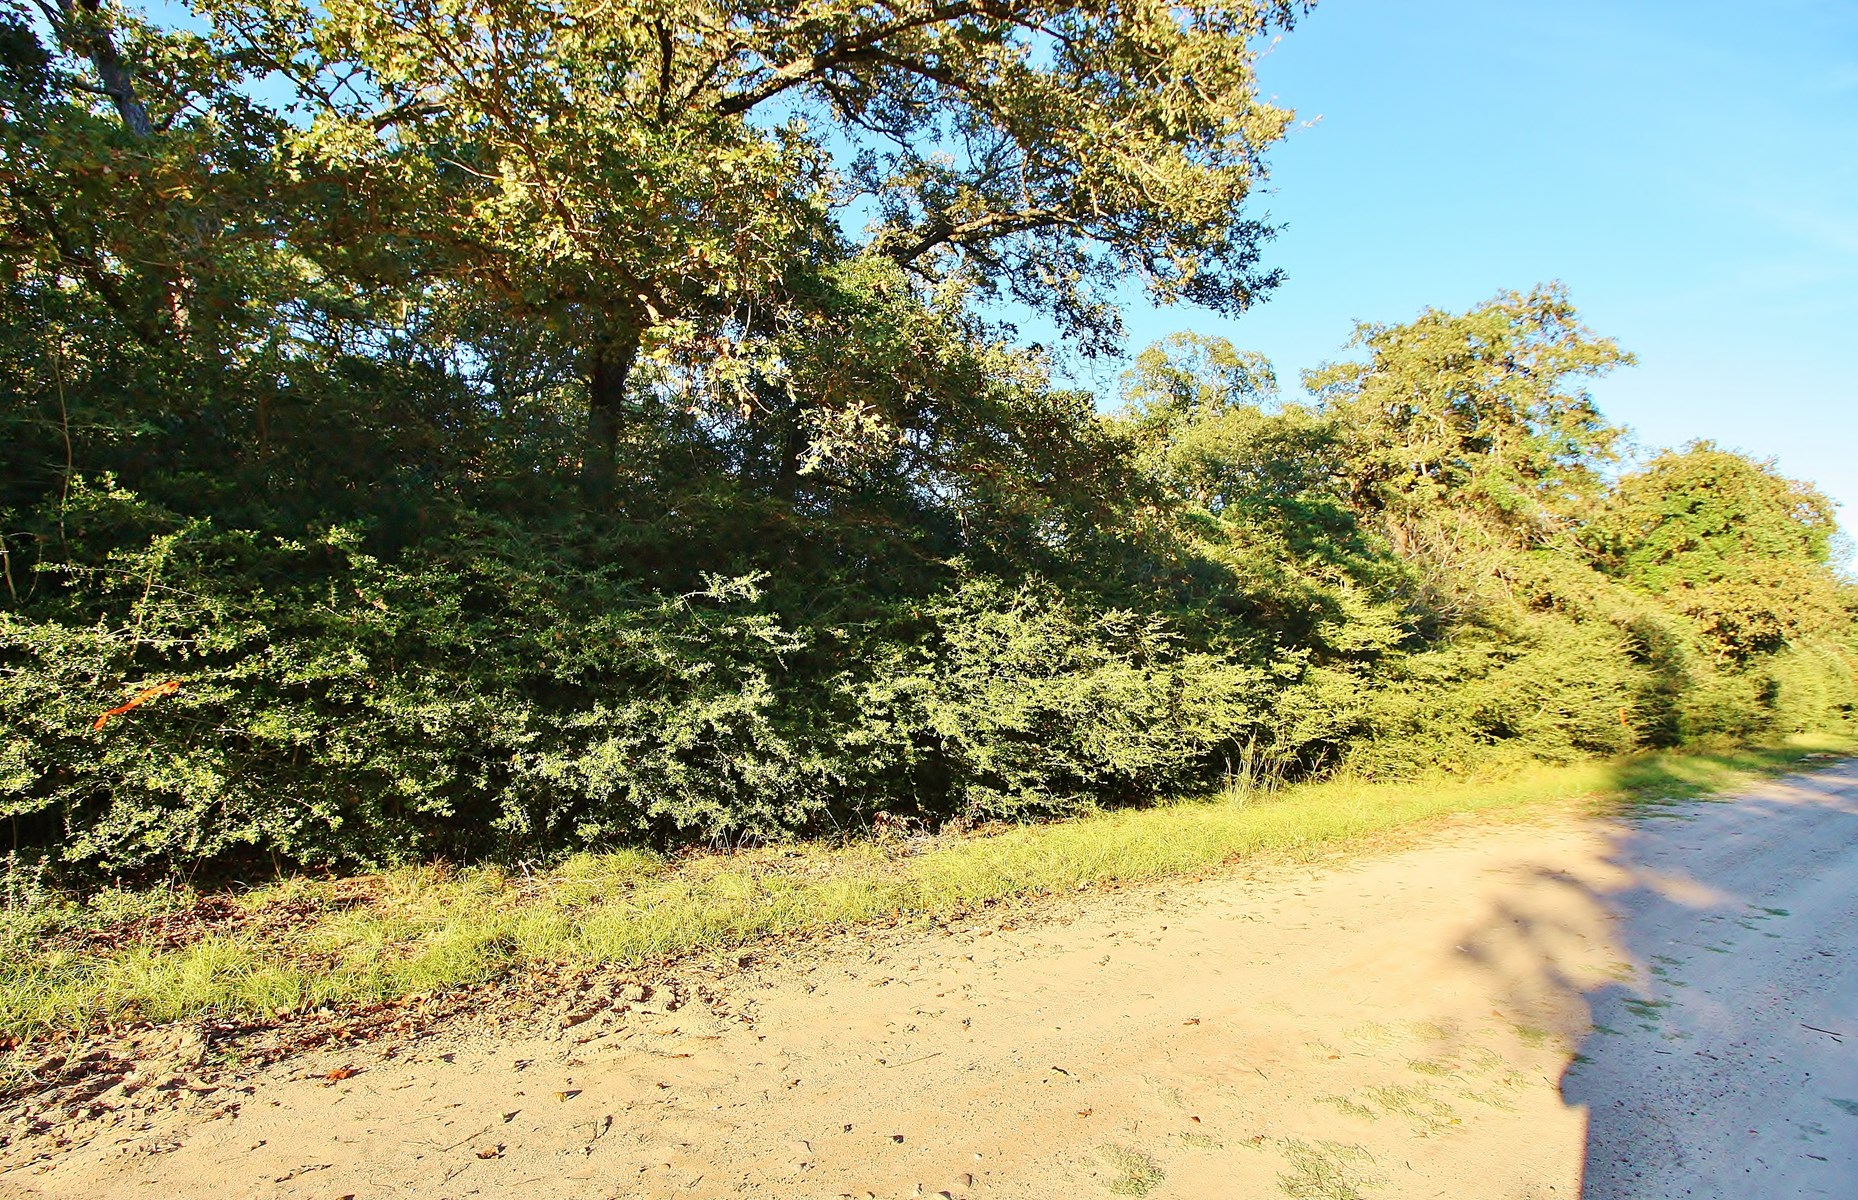 Buildable Lot for Sale in Hilltop Lakes, TX